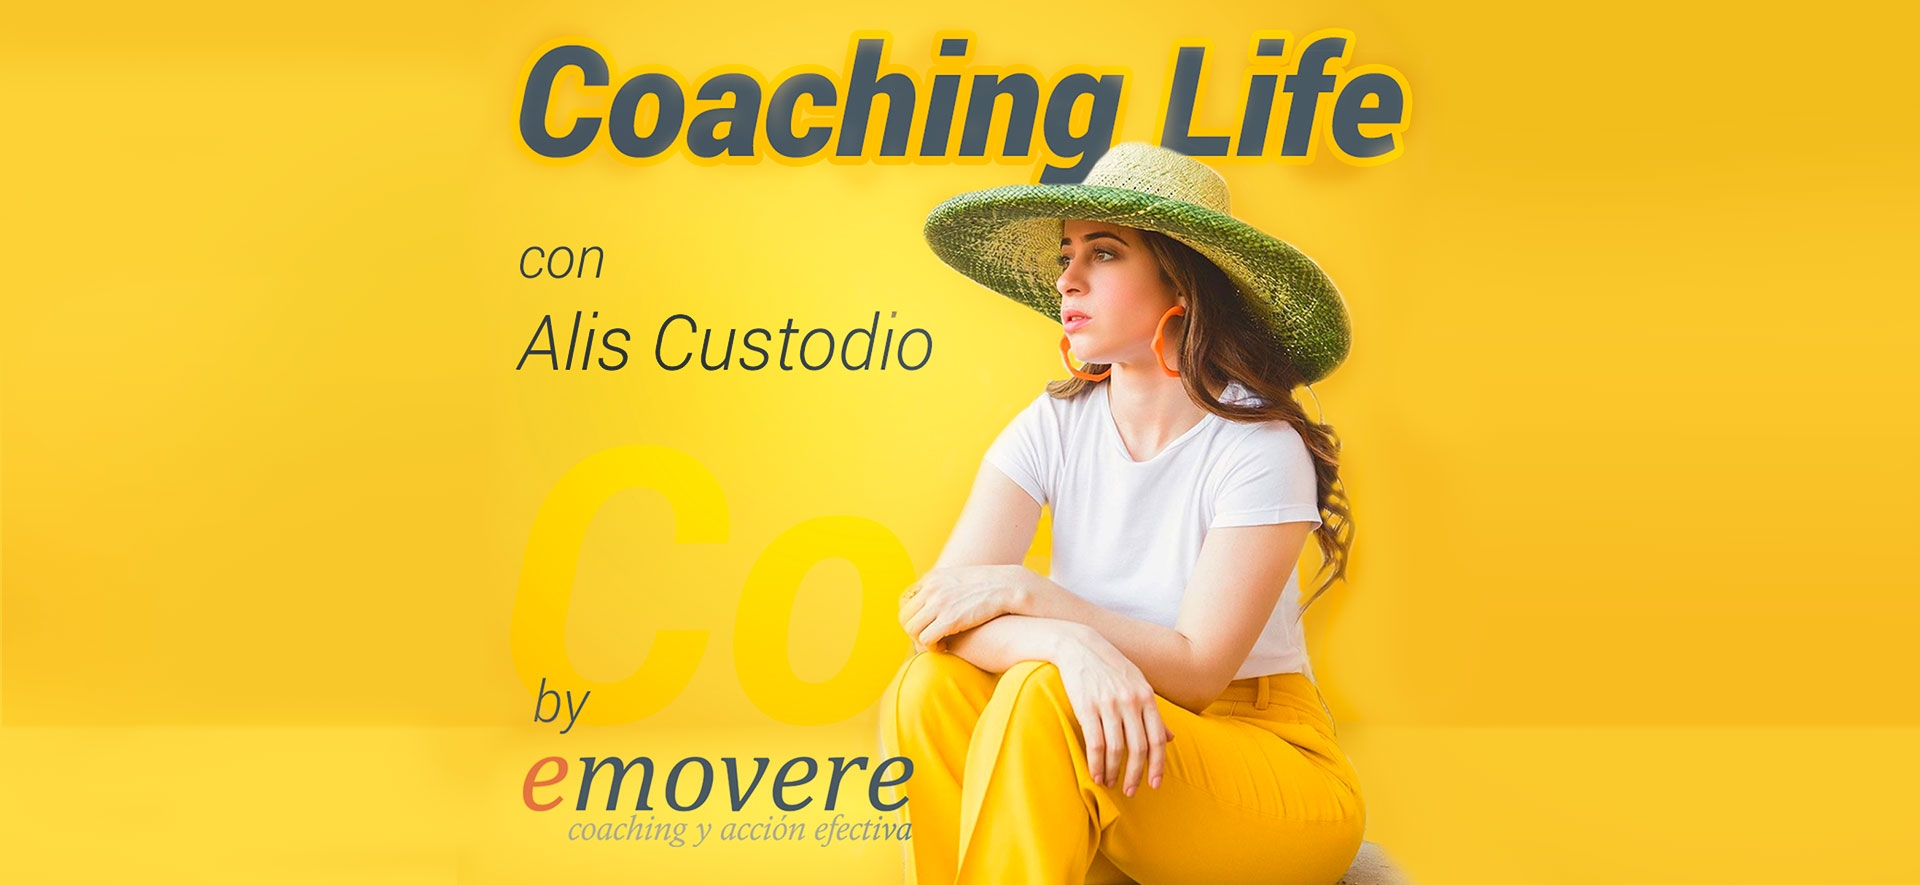 Coaching Life con Alis